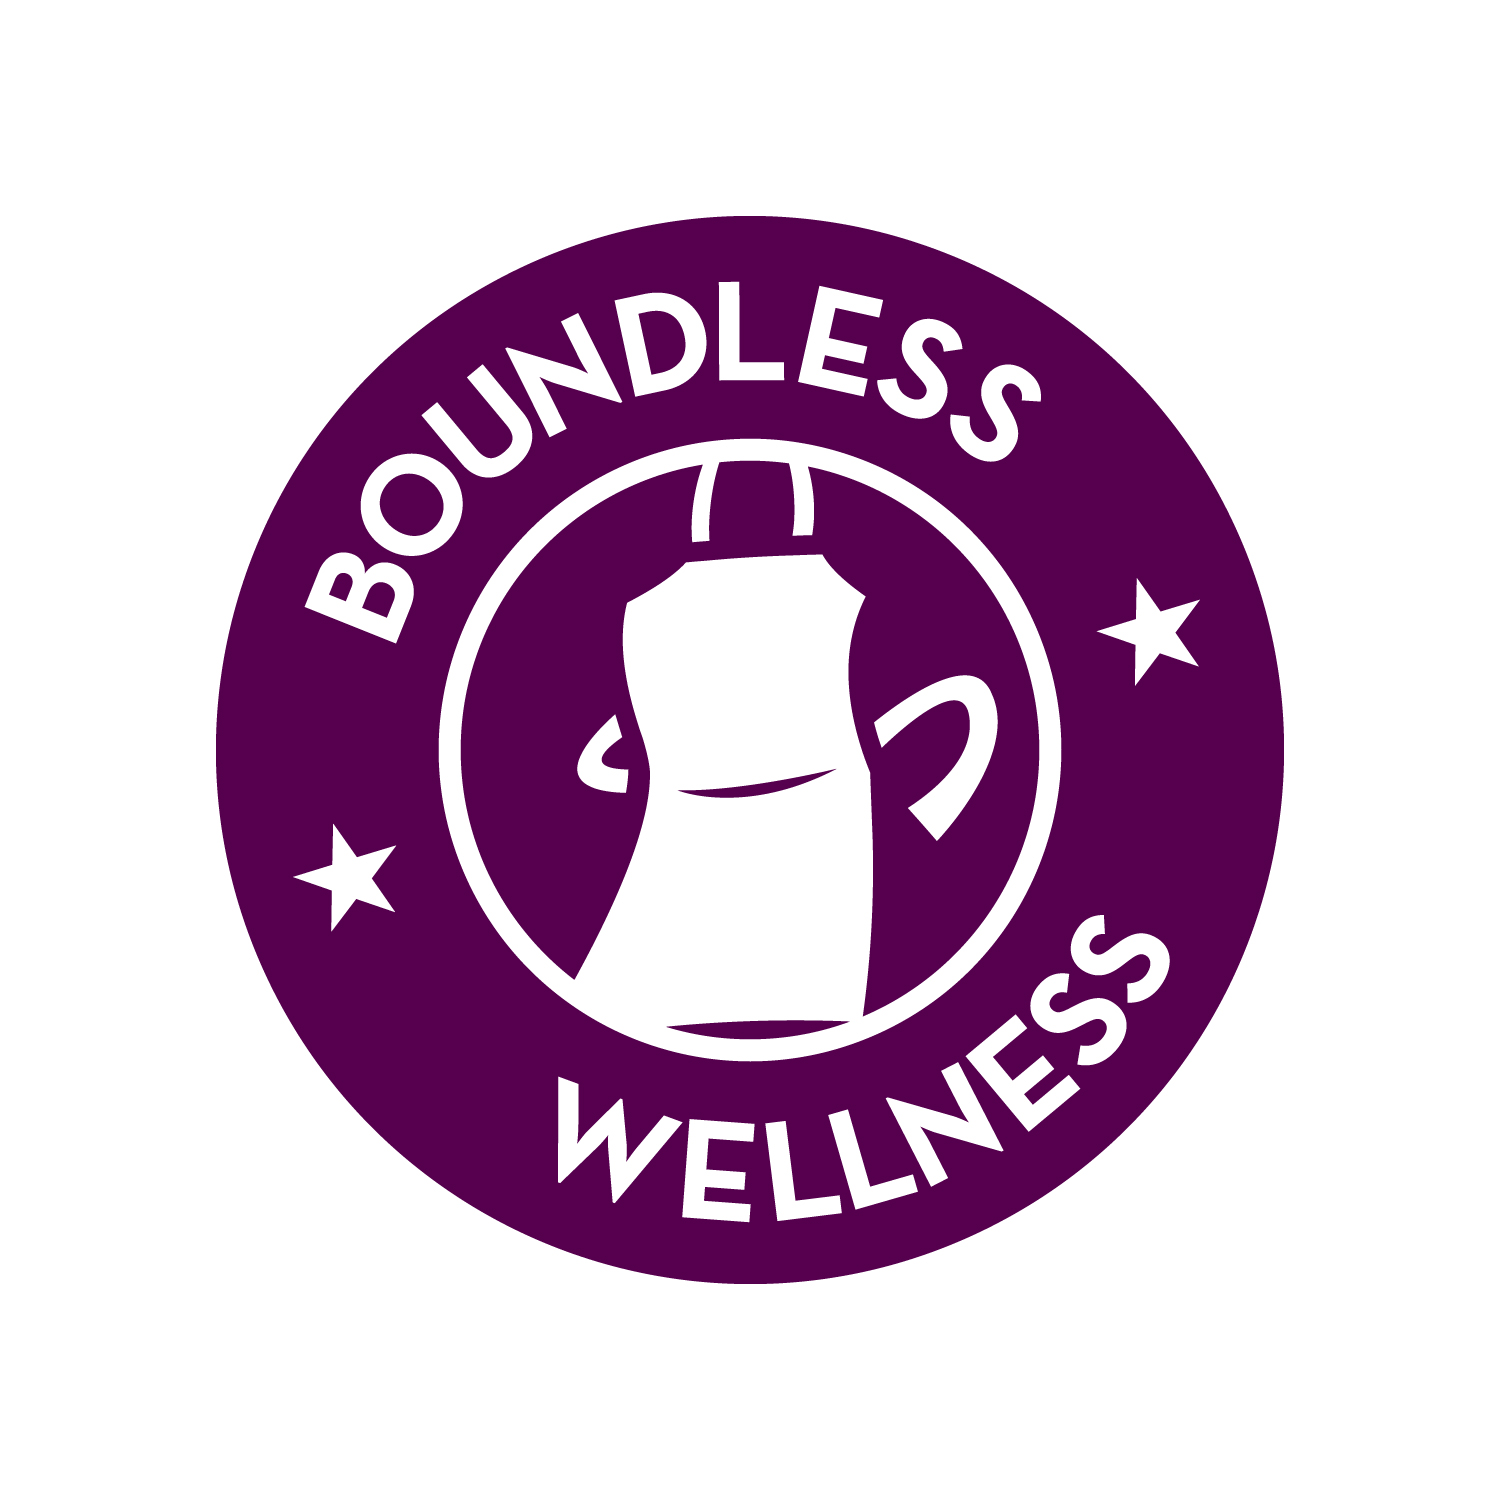 Boundless Wellness